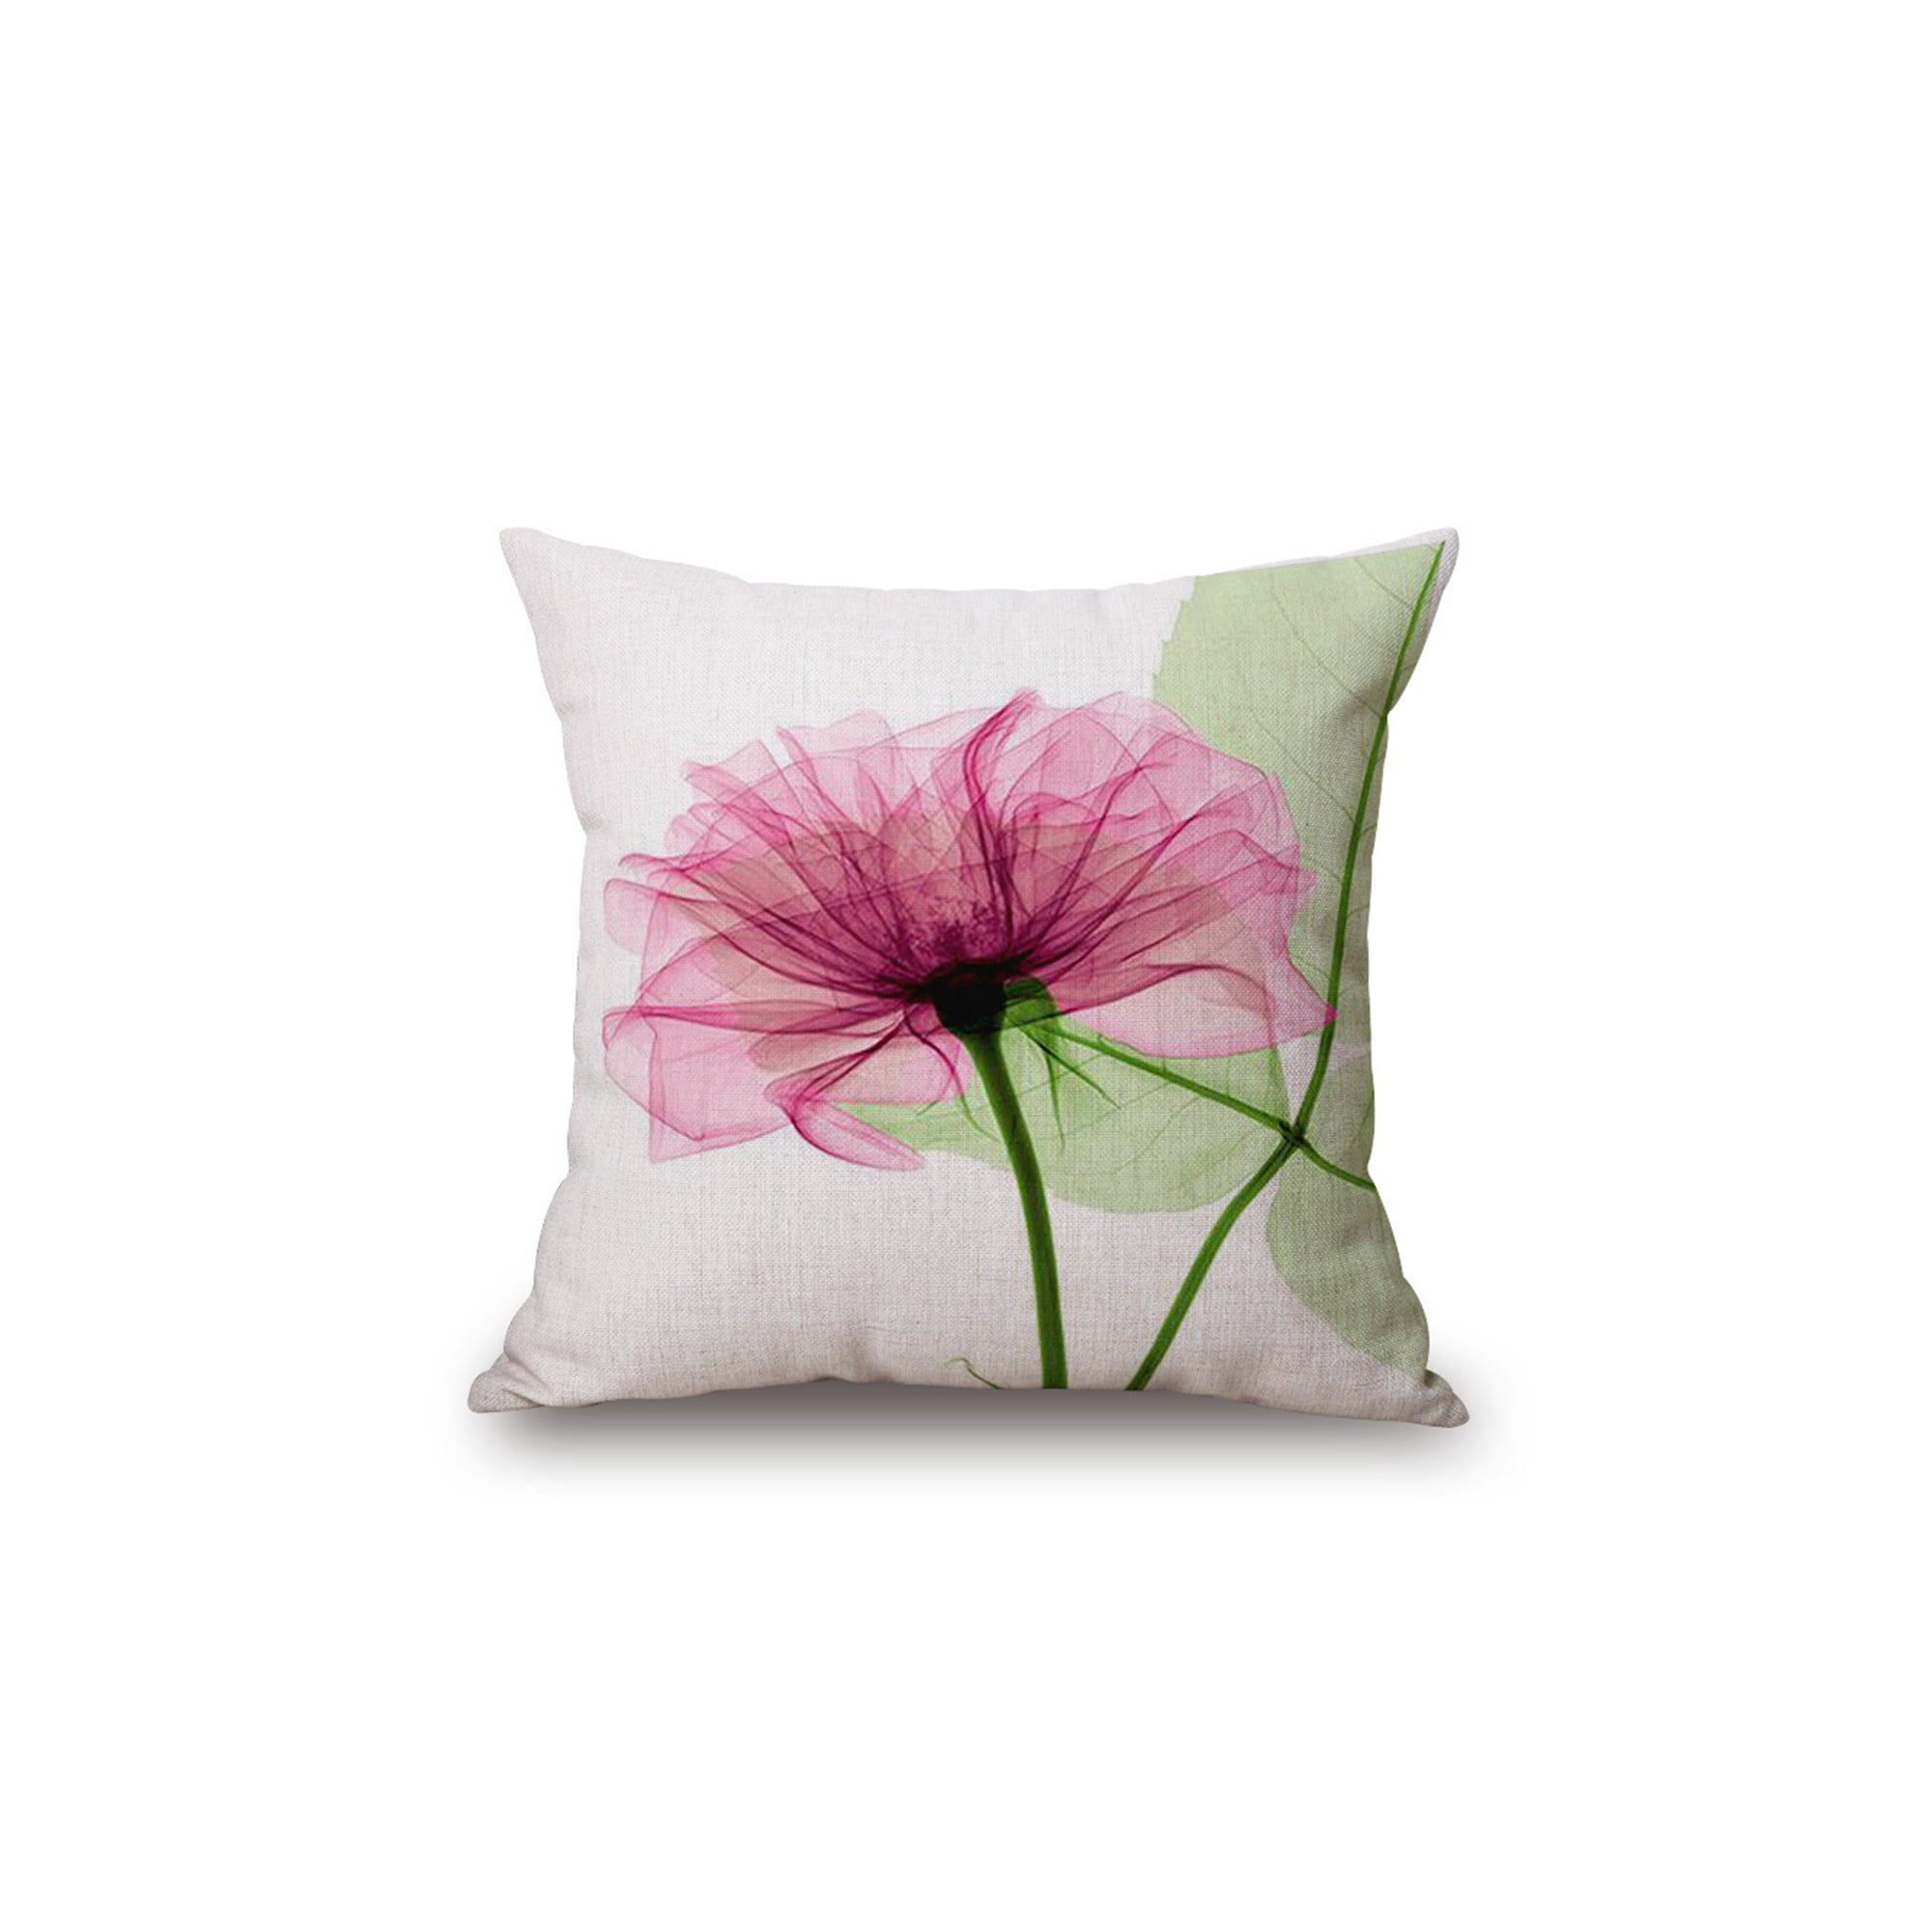 Flowers Throw Pillow Covers Cotton Linen Square Decorative Throw Pillow Case Cushion Cover Enchanting Beautiful Flowers Gift Anniversary Day Present 18 X18 Walmart Canada